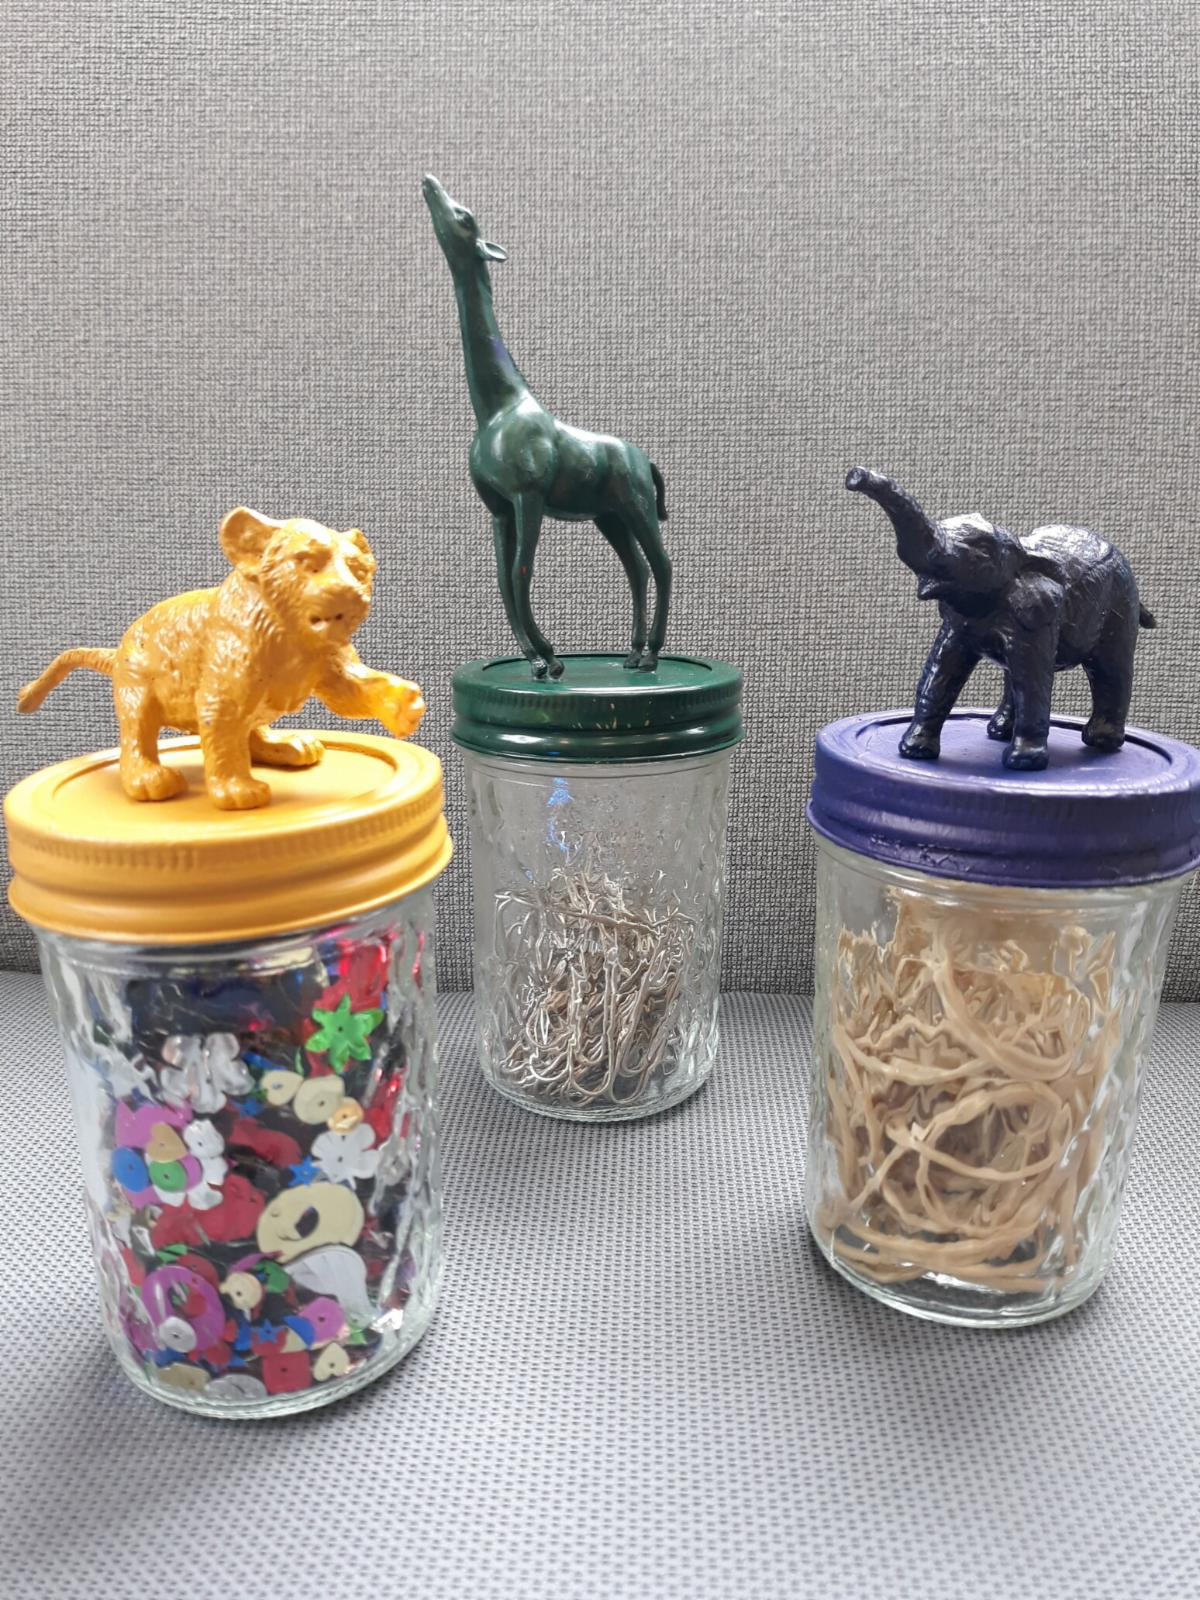 Image of glass jars with painted lids and painted plastic animals on top